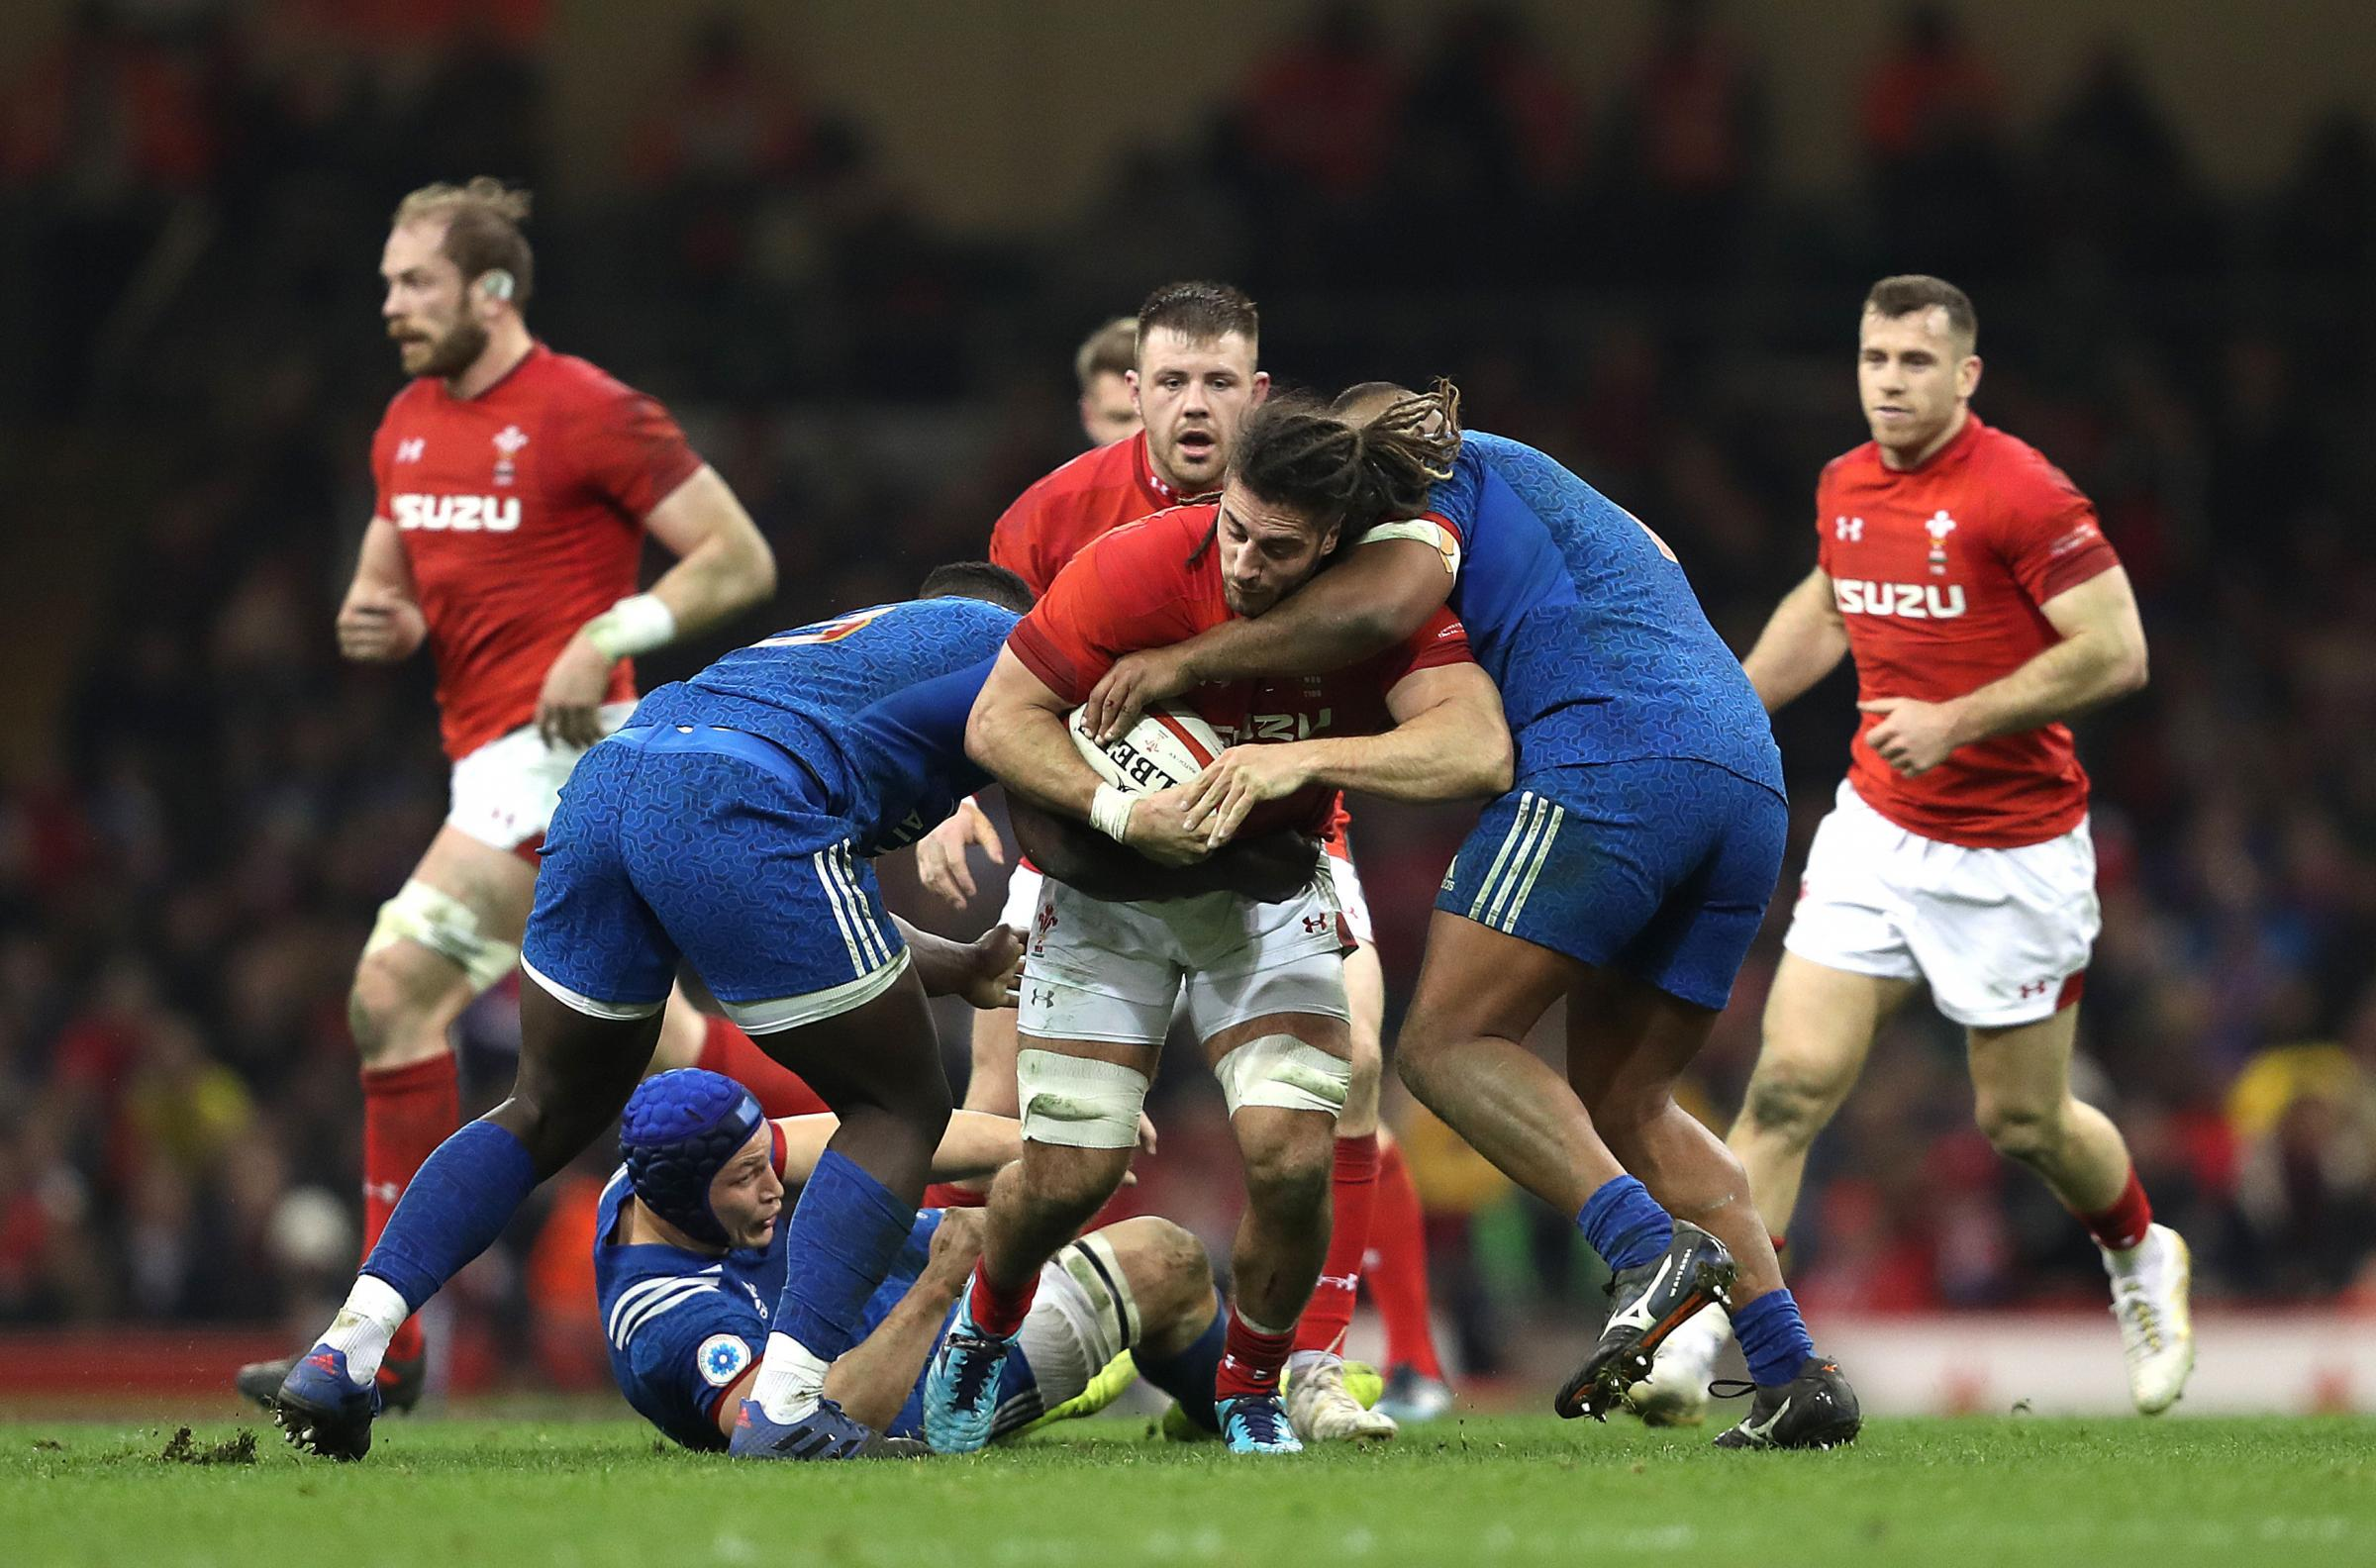 BRUISING BATTLE: Wales flanker Josh Navidi wants to run the big French forwards around